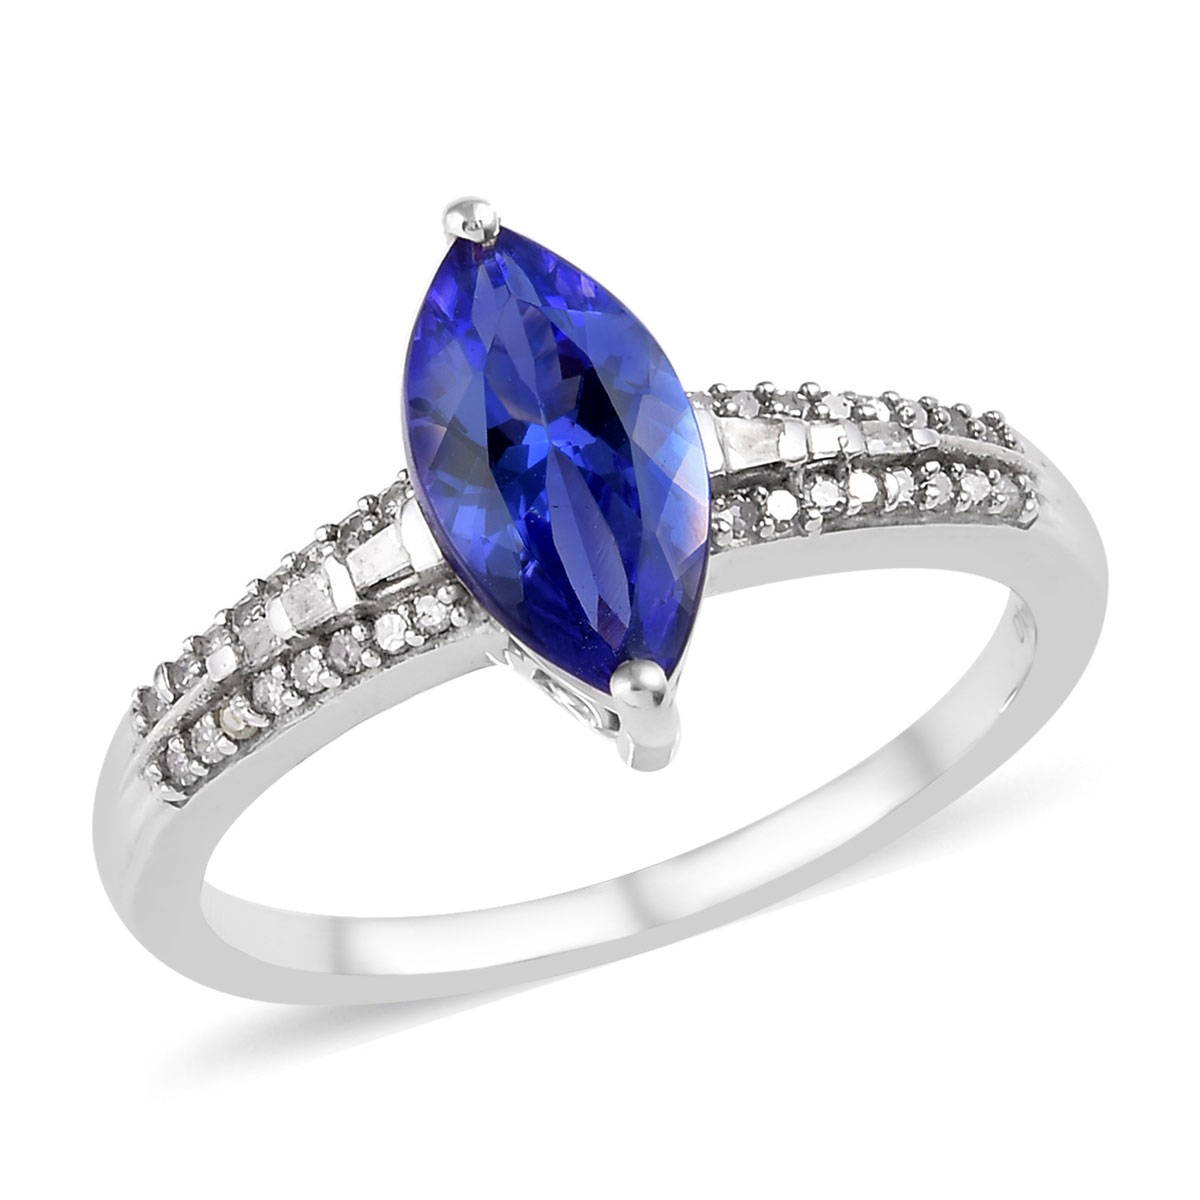 Tanzanite Zircon Engagement Ring Silver Platinum Plated for Women Size 6 Ct 1.5